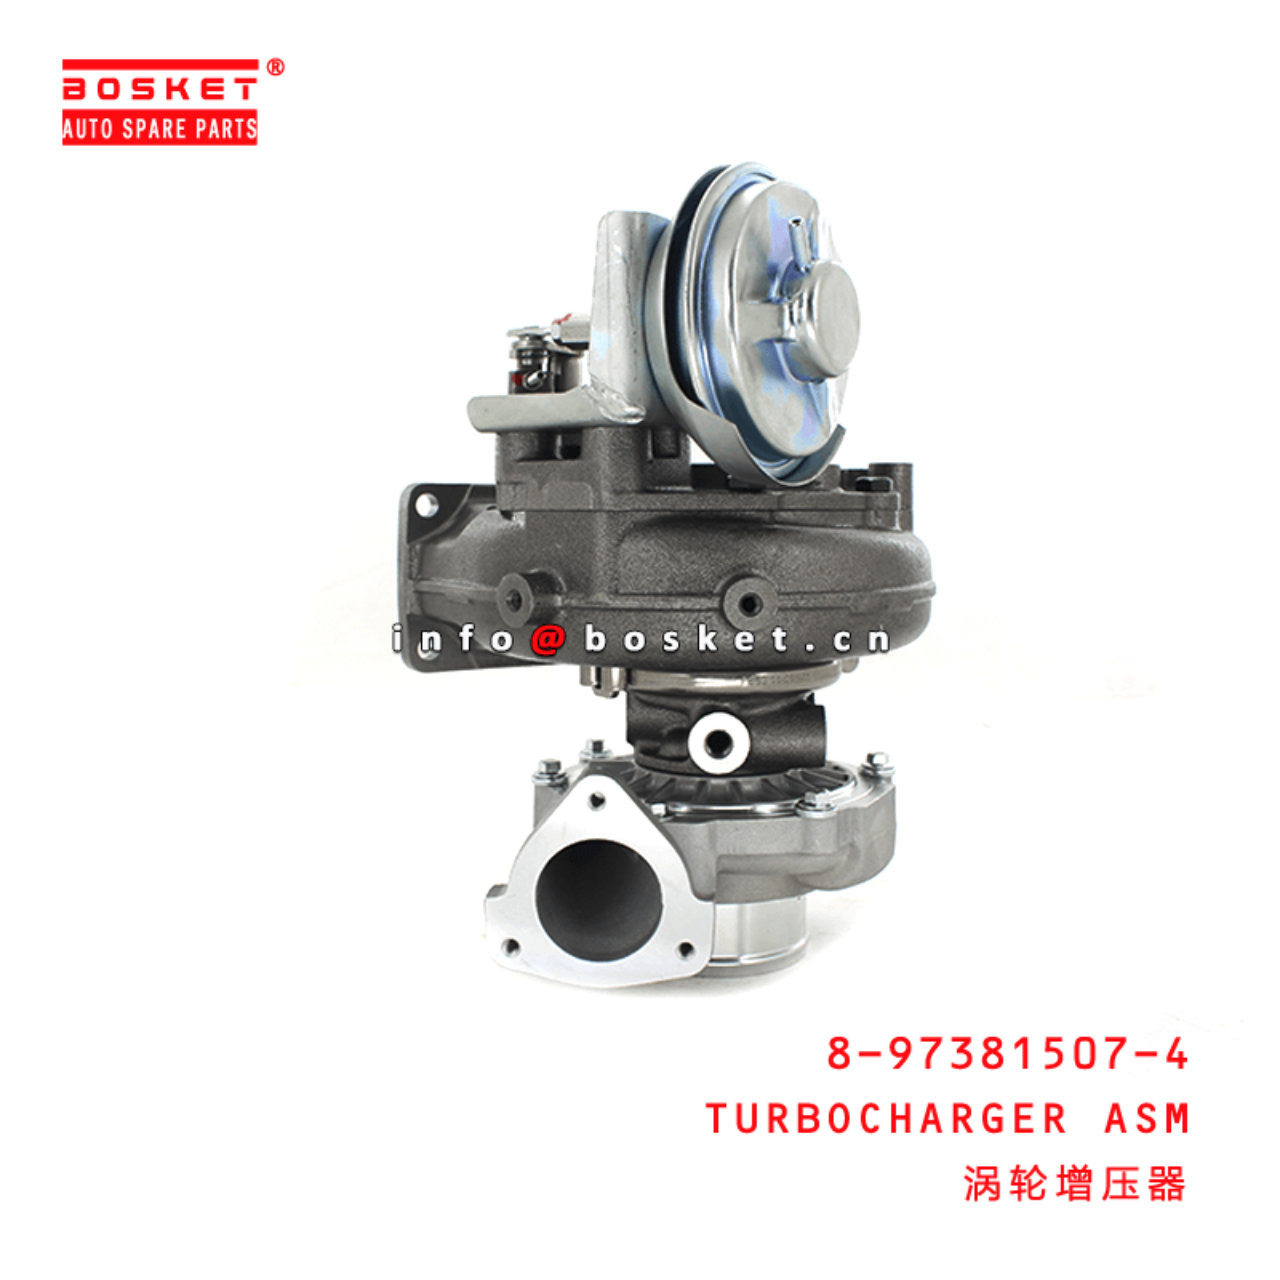 8-97381507-4 Turbocharger Assembly 8973815074 Suit...